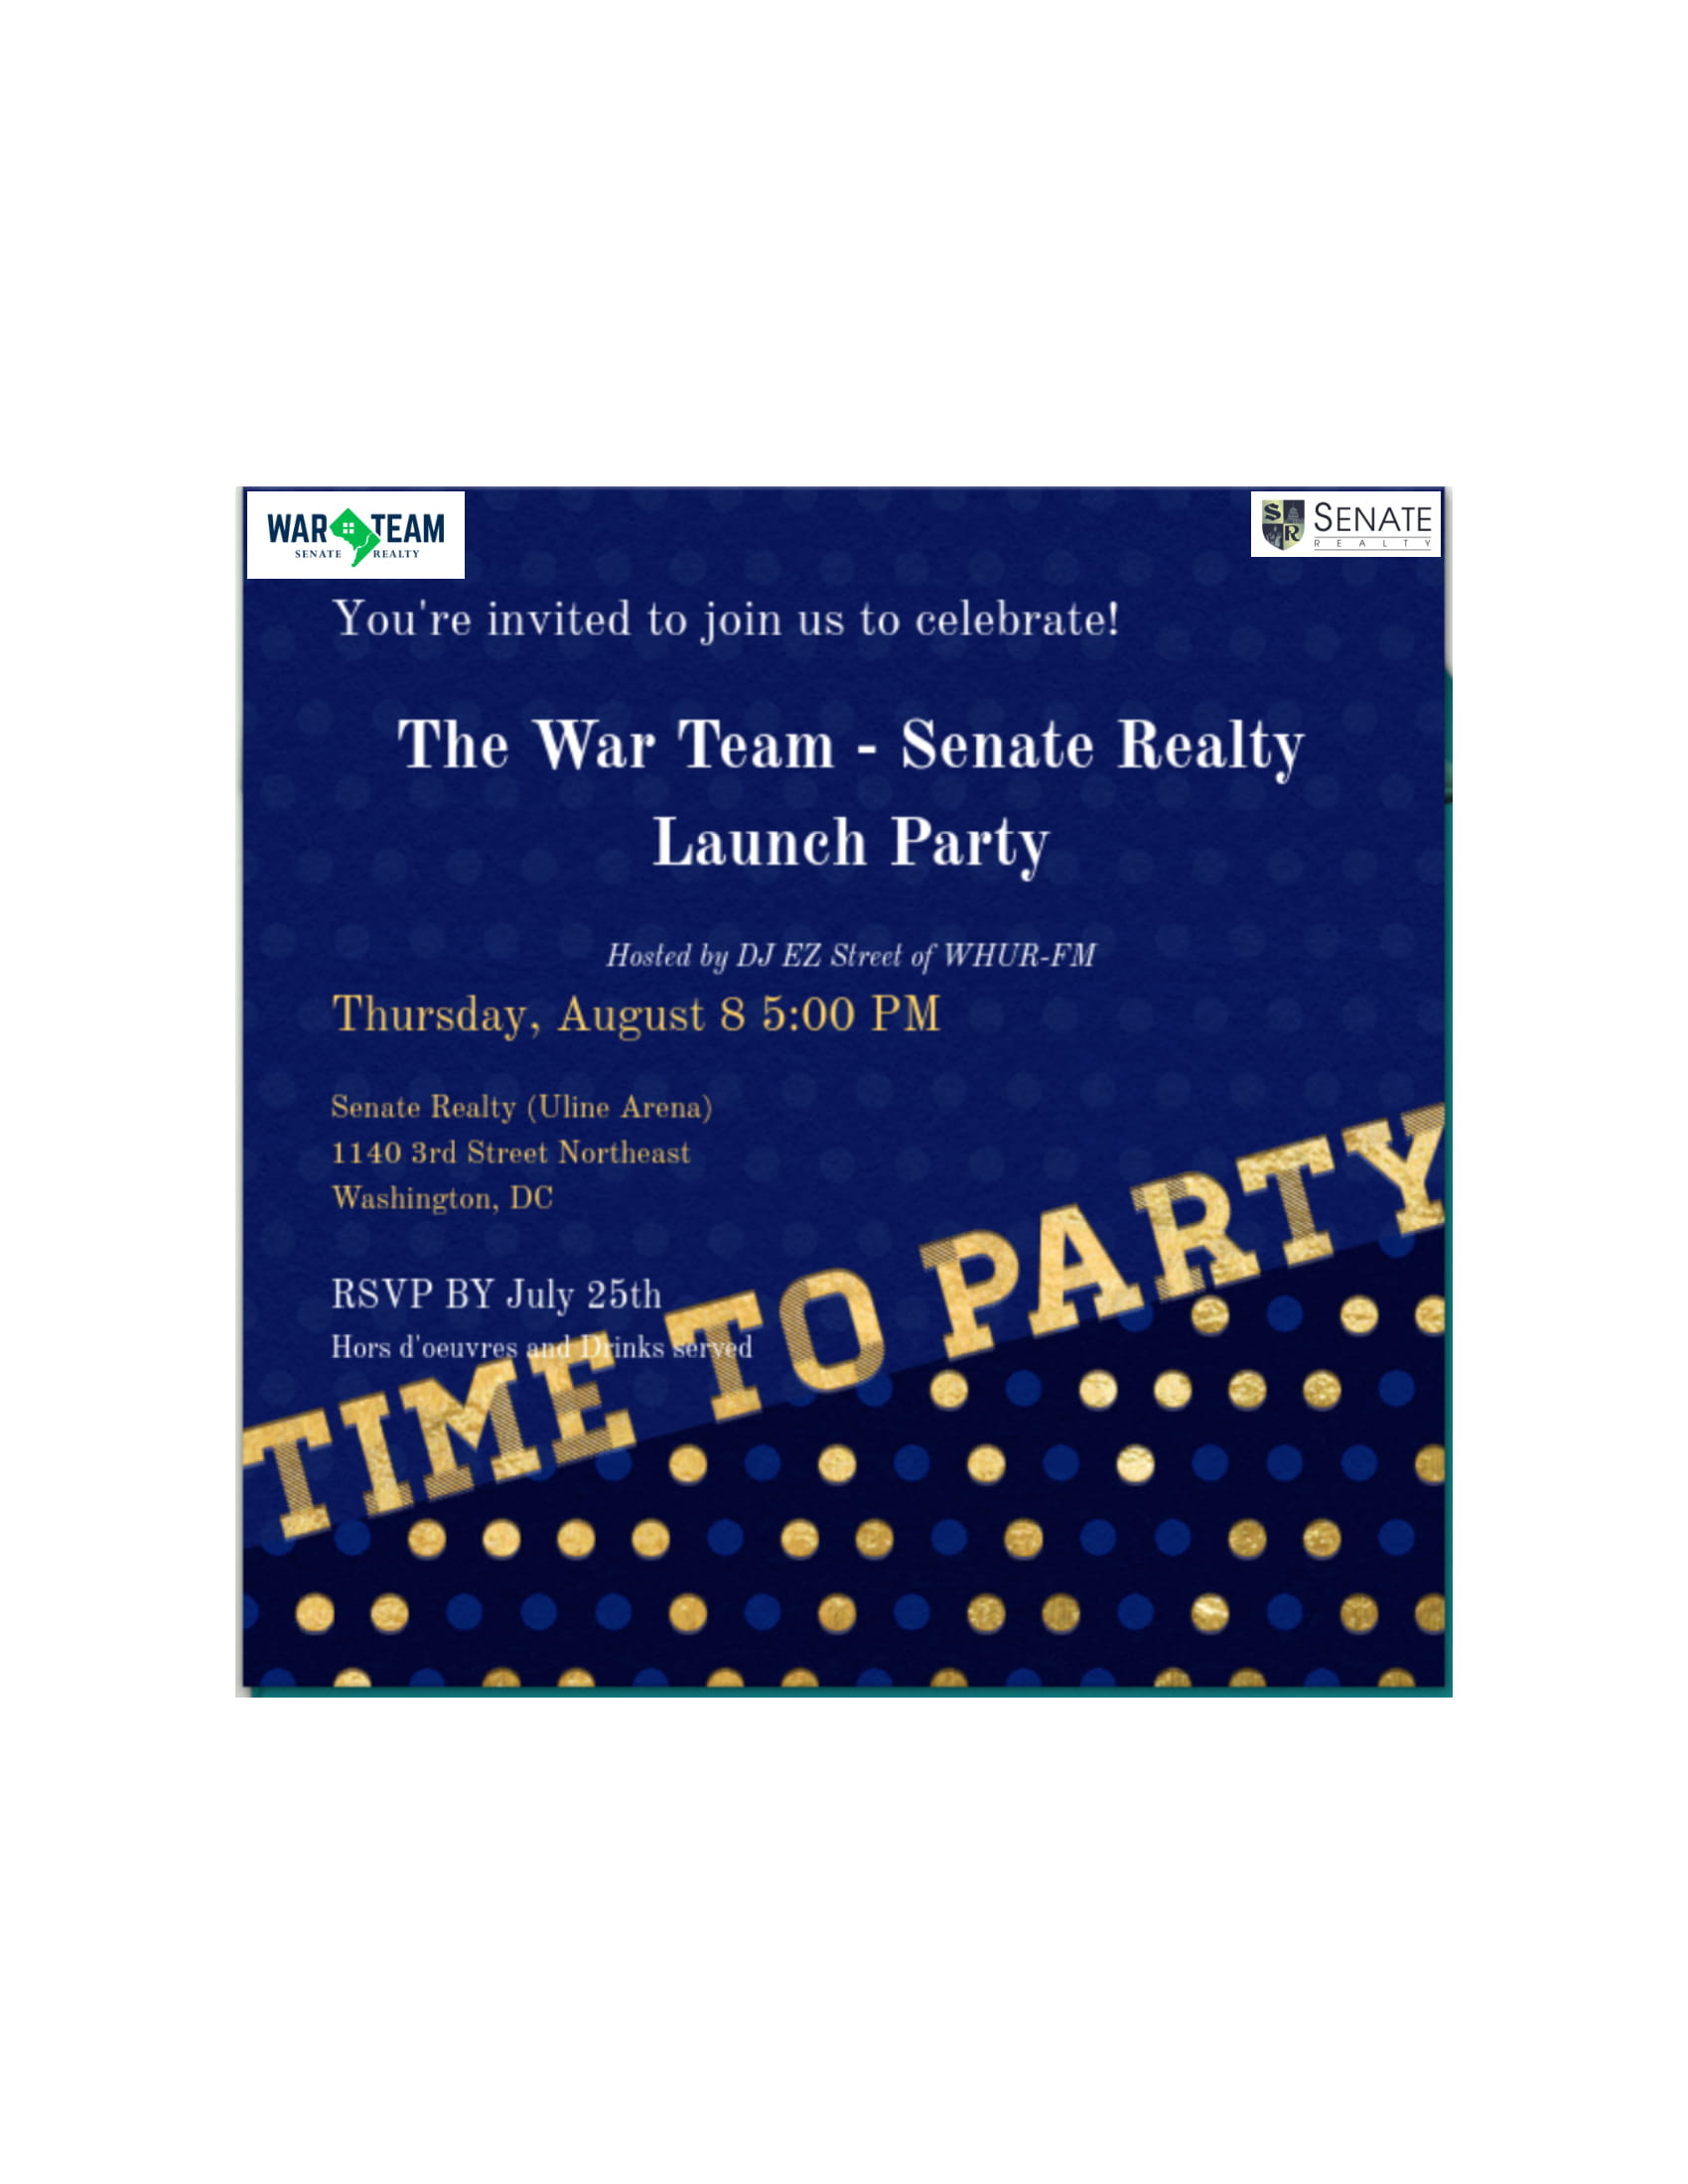 Launch Party Invite  (1)-1.jpg